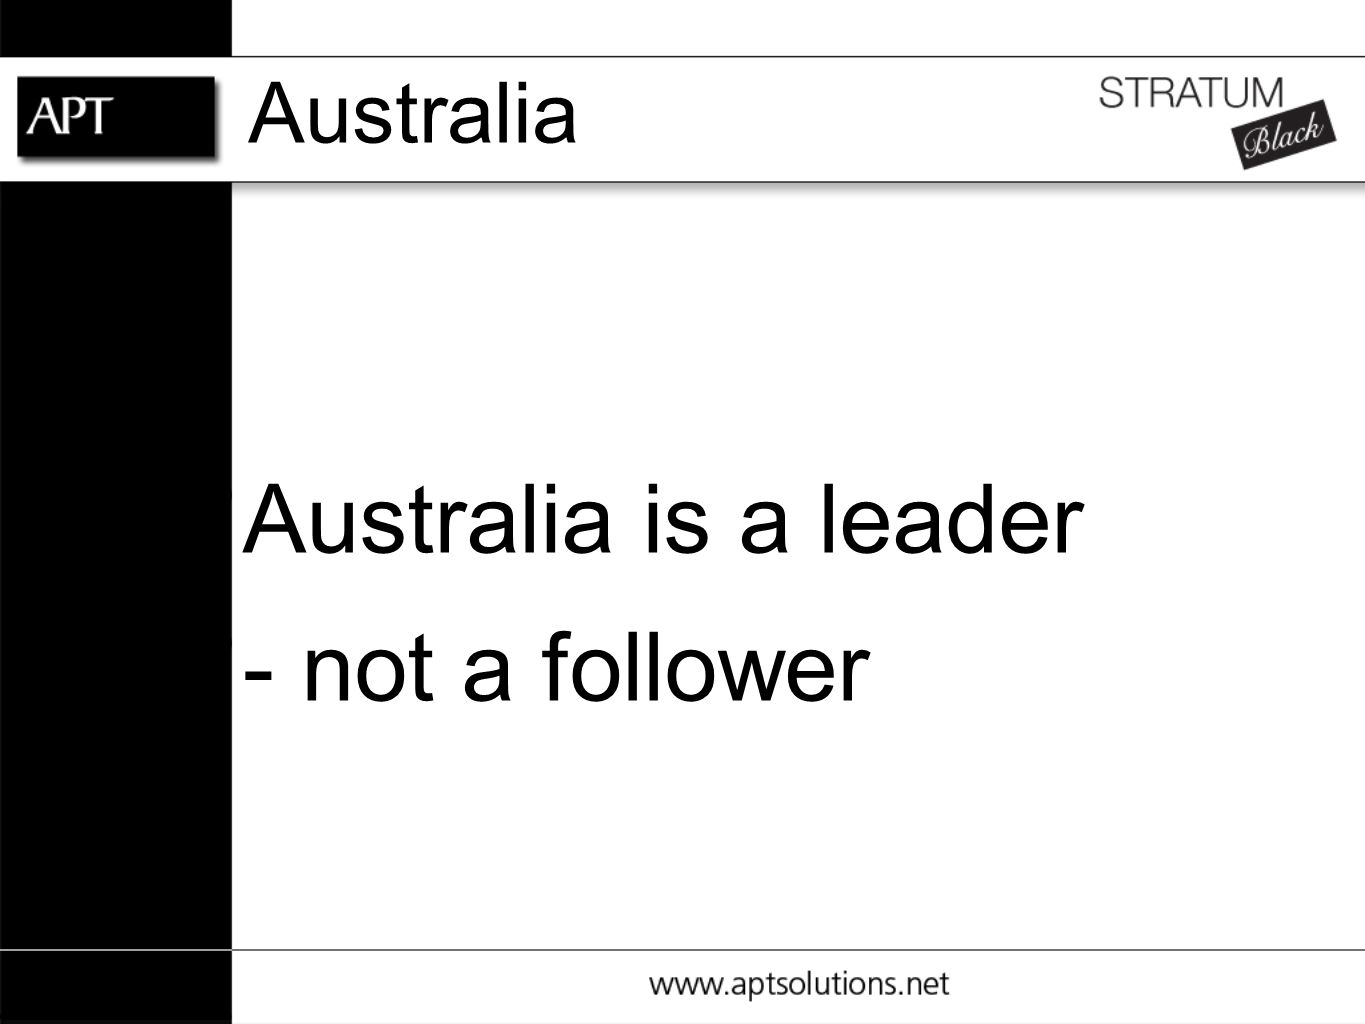 Australia Australia is a leader - not a follower